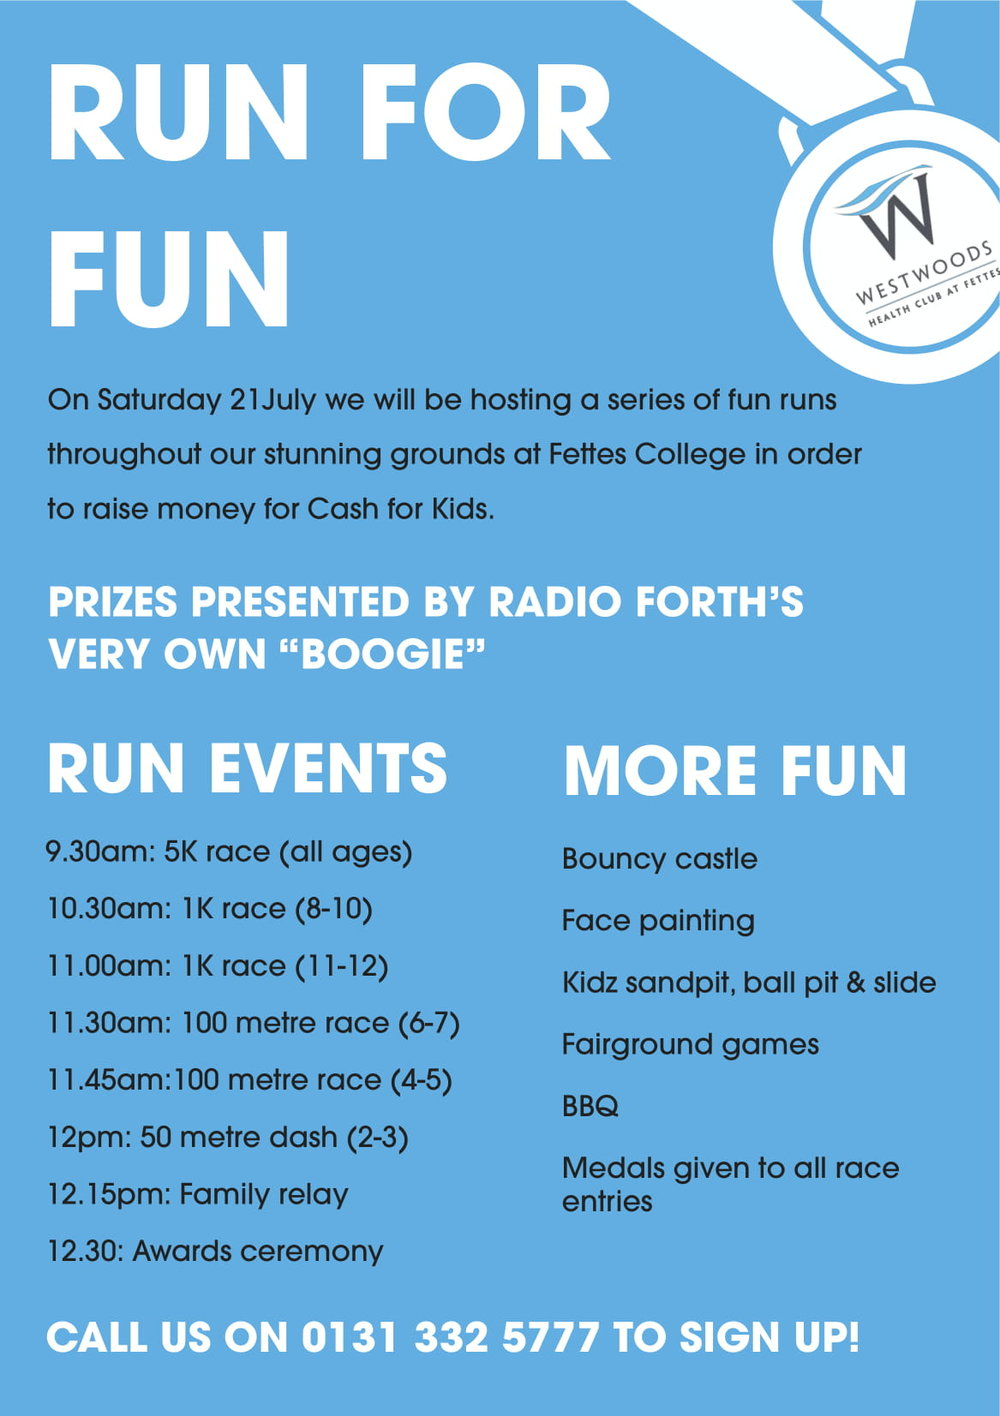 Westwoods Family Fun Runs 21 July 2018.jpg